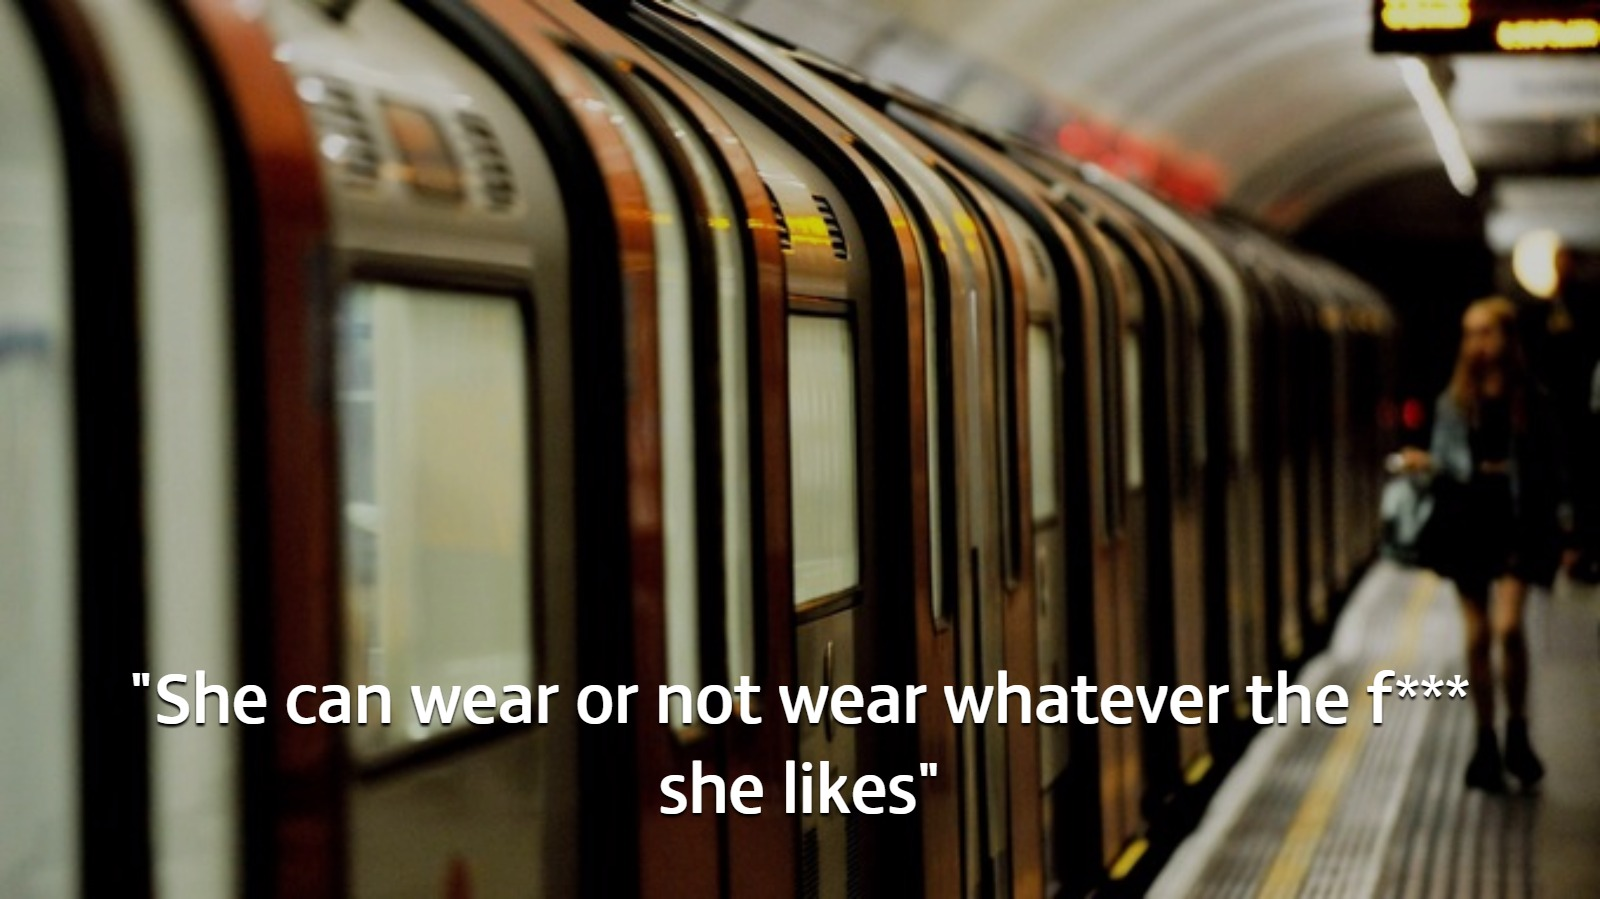 Young woman abused for being 'scantily-clad' is rescued on the Tube by a horrified pensioner